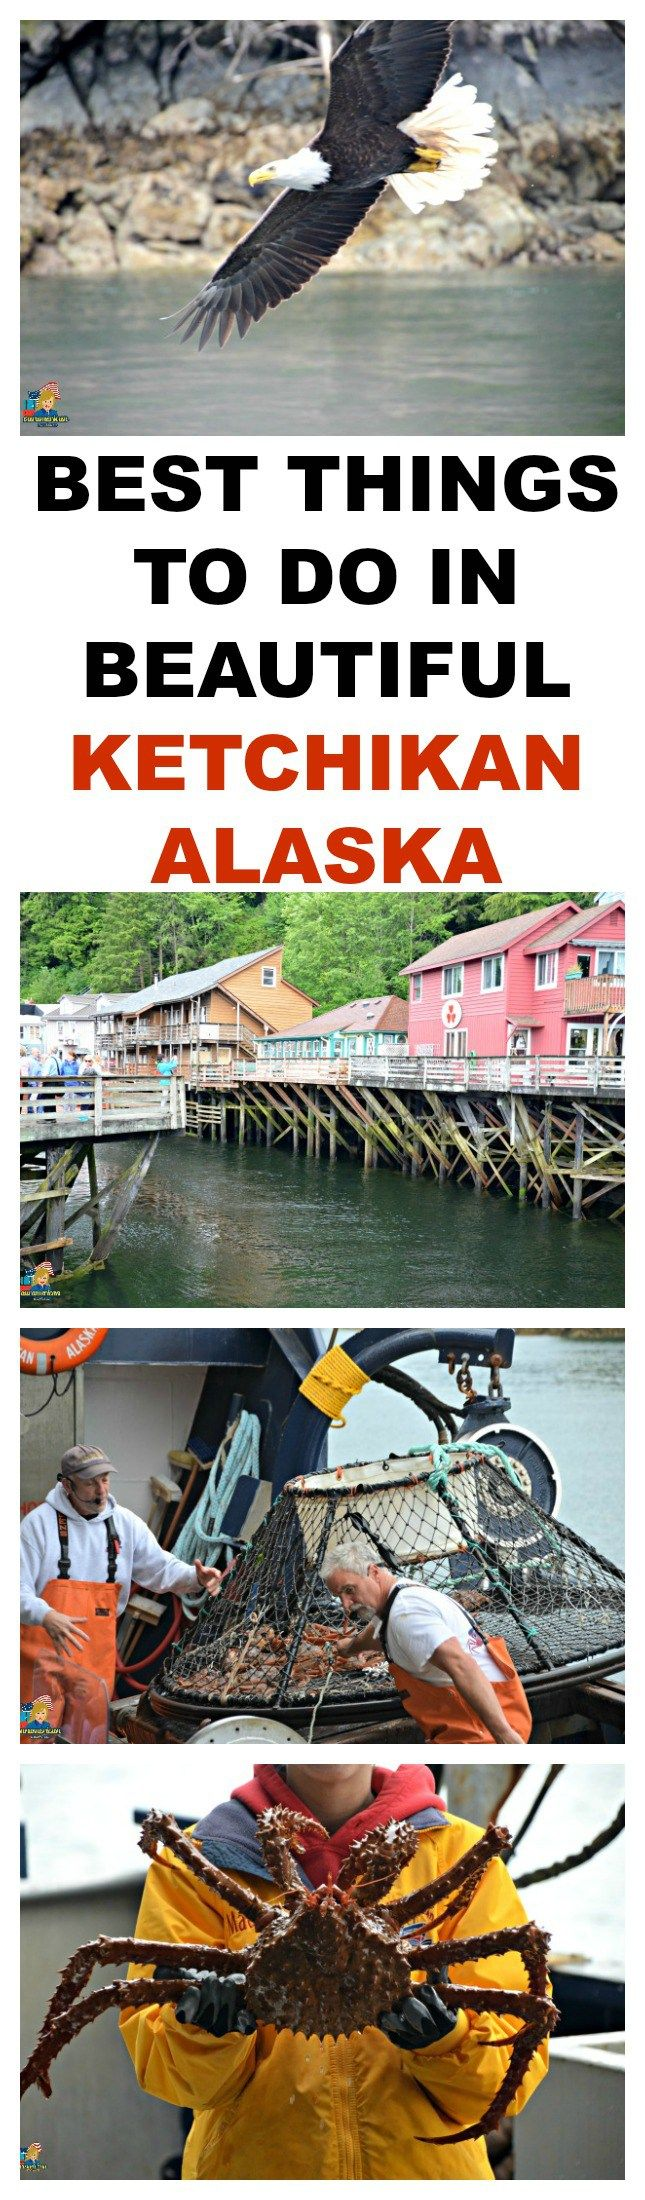 BEST THINGS TO DO IN BEAUTIFUL KETCHIKAN ALASKA - Perfect vacation for everyone. SEE REVIEW HERE: http://ouramericantravels.com/ketchikan-alaska/